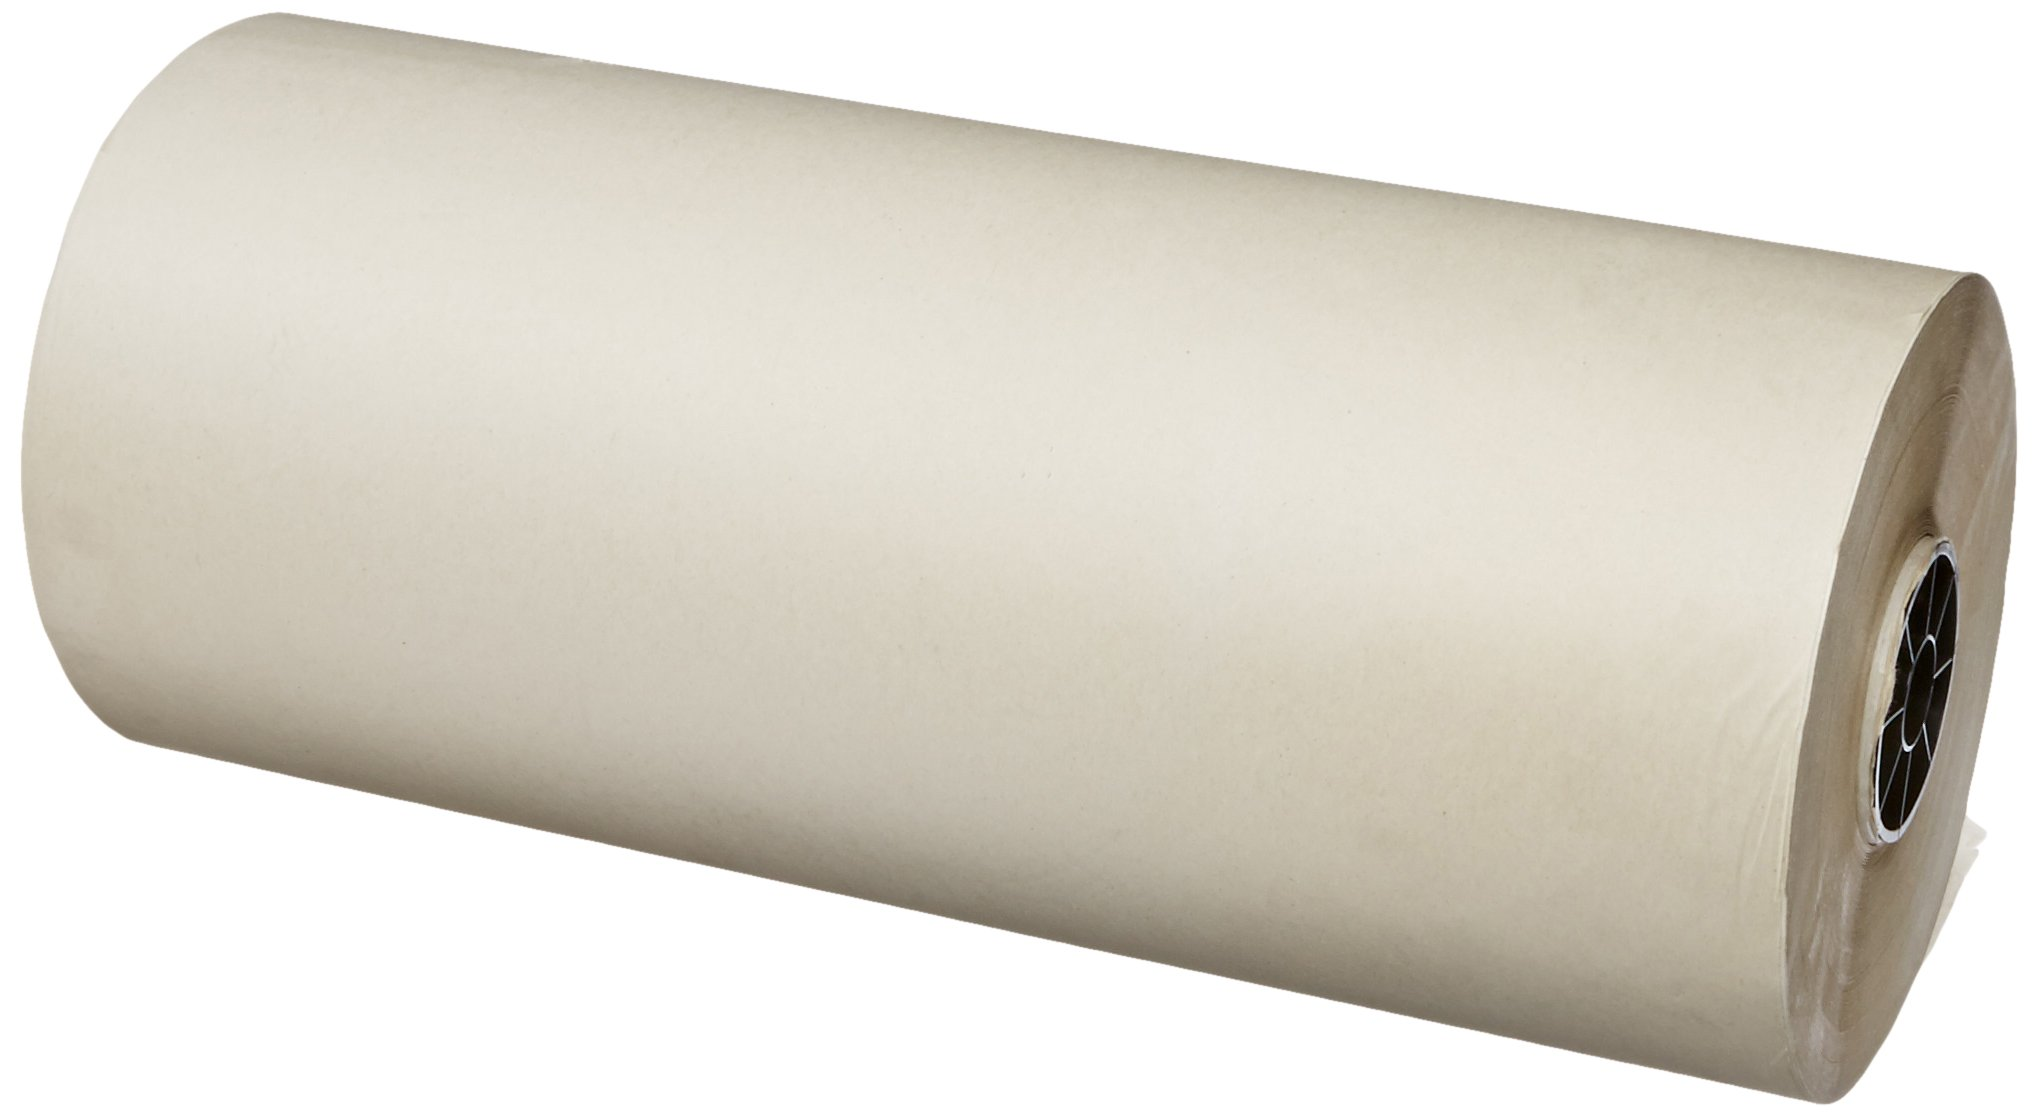 Pratt Multipurpose Newsprint Wrapping Paper Sheet, NPR2030,  1695' Length x 20'' Width, White